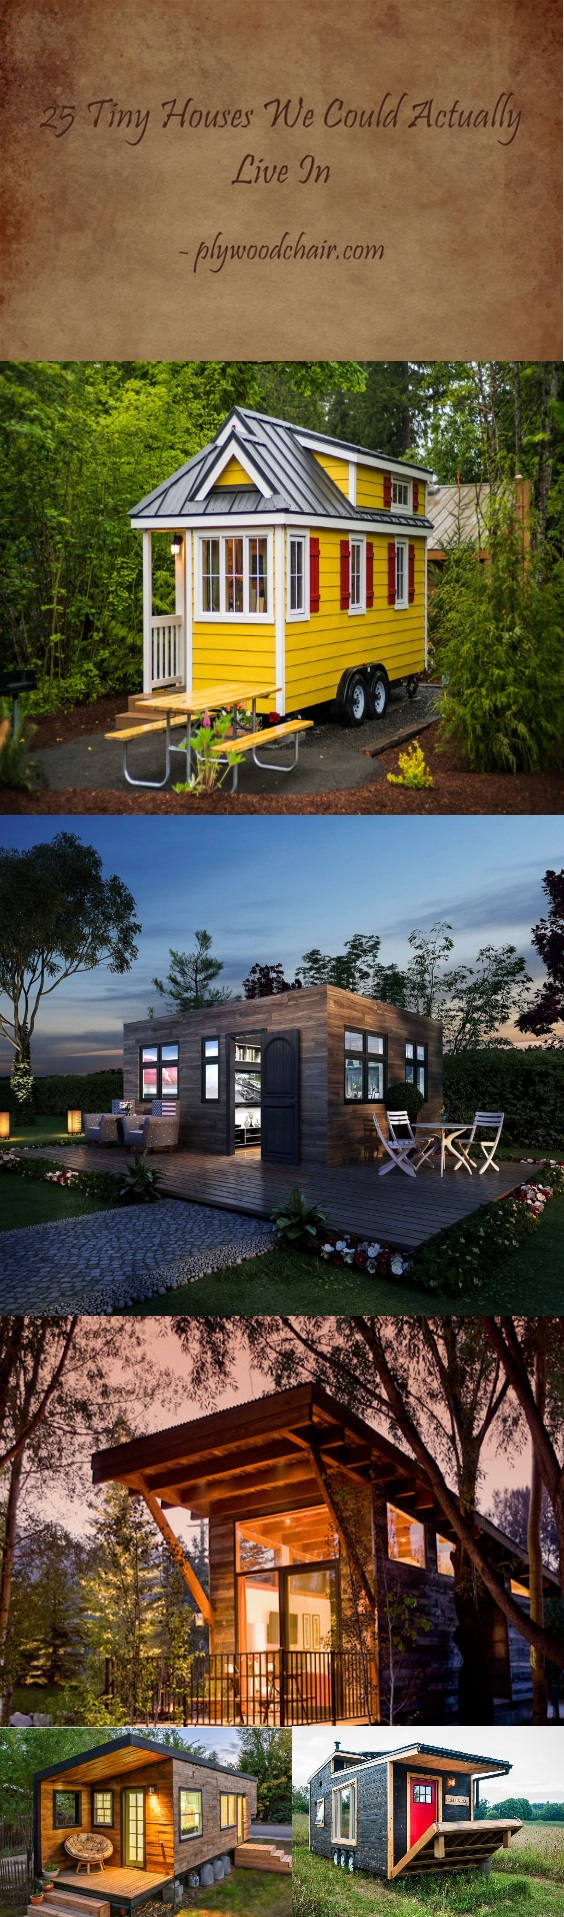 tiny house for small l living